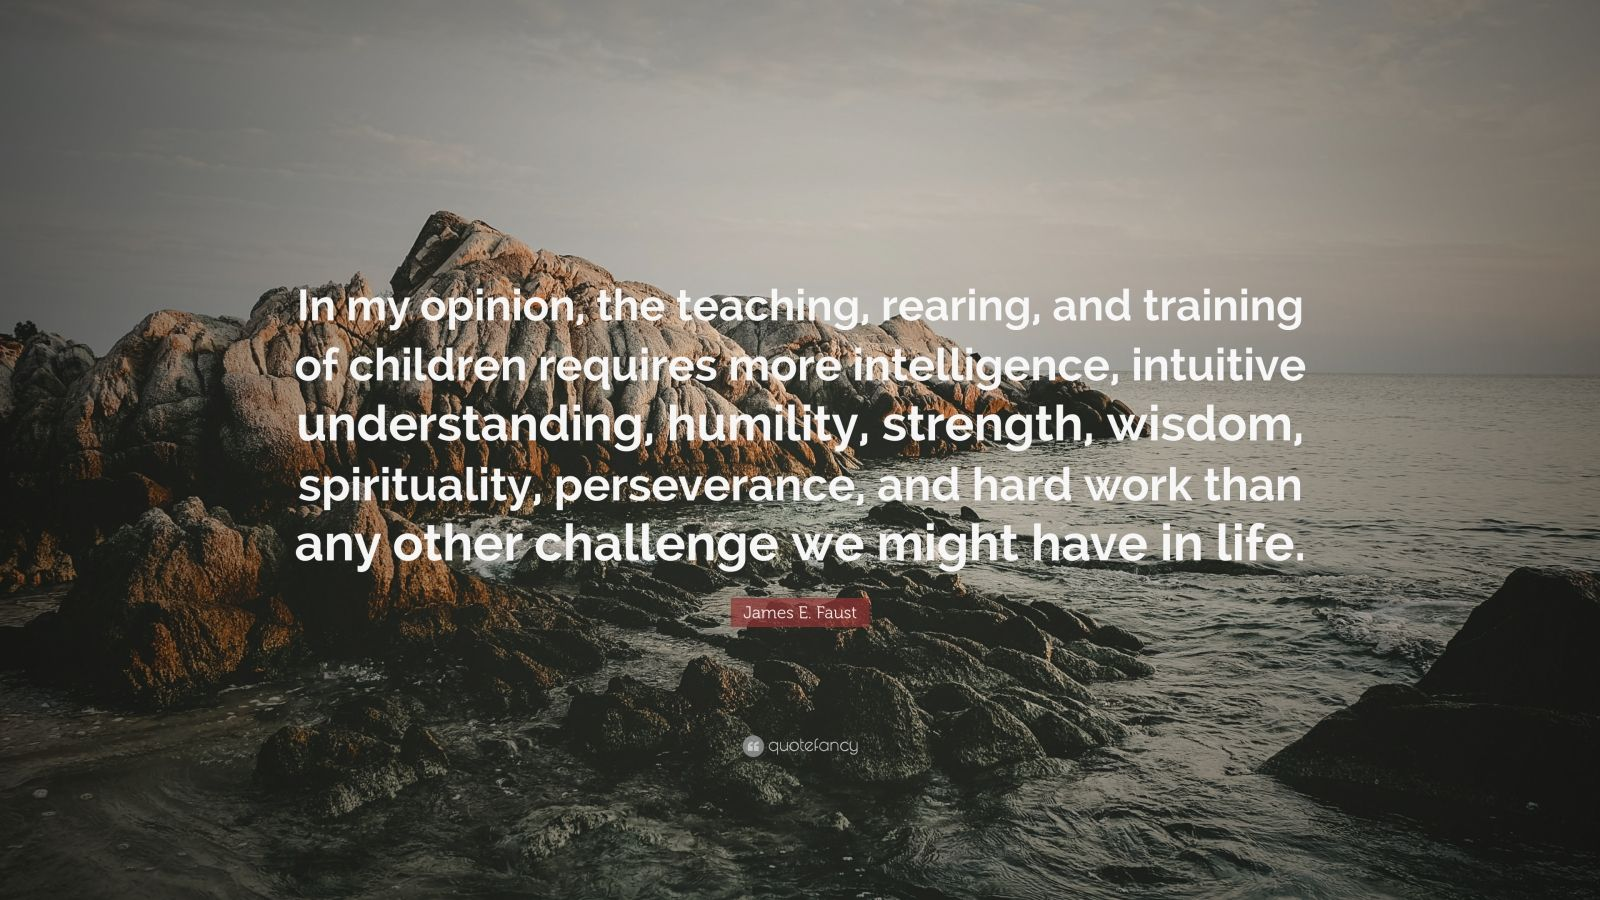 """James E. Faust Quote: """"In my opinion, the teaching, rearing, and training of children requires more intelligence, intuitive understanding, humility, strength, wisdom, spirituality, perseverance, and hard work than any other challenge we might have in life."""""""